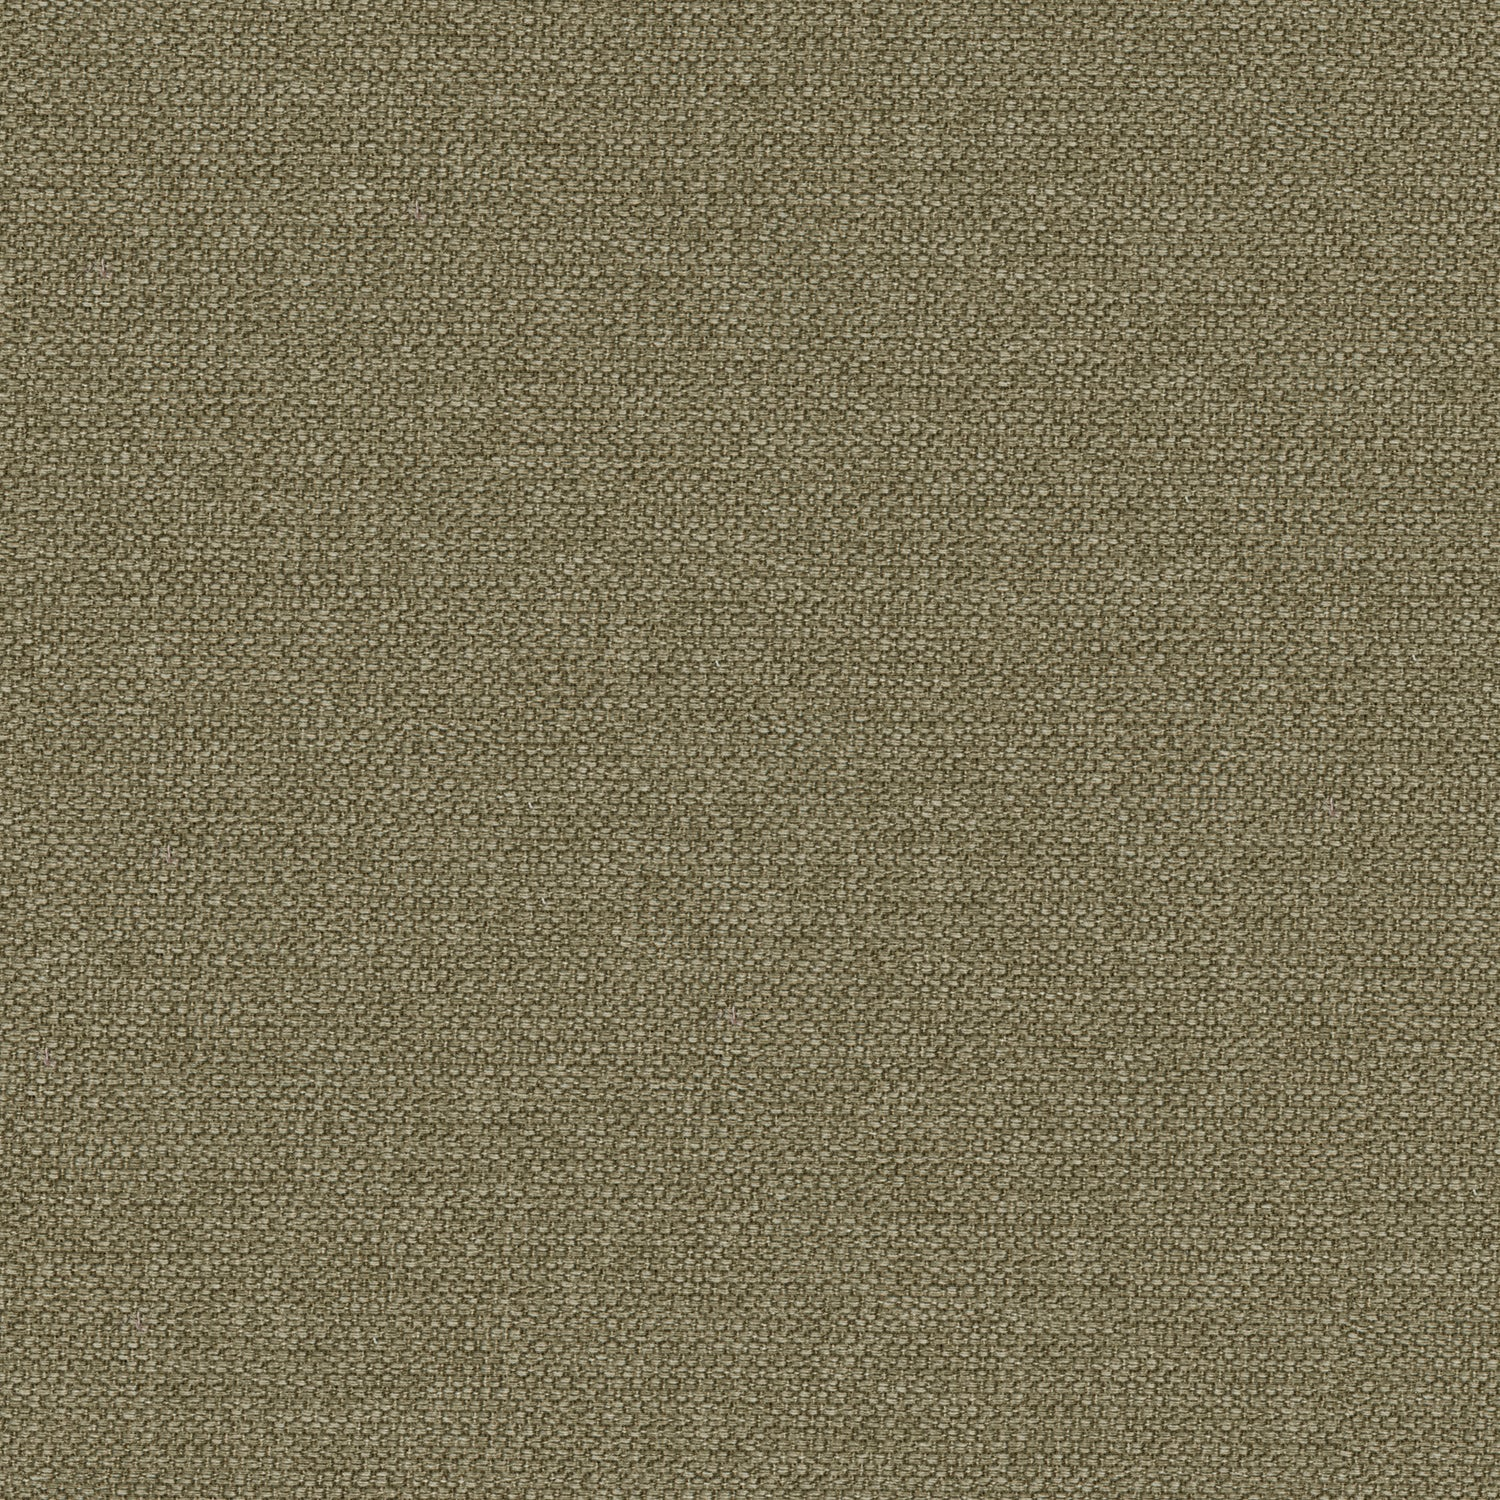 Dark neutral plain washable cotton fabric for domestic and contract curtains or upholstery